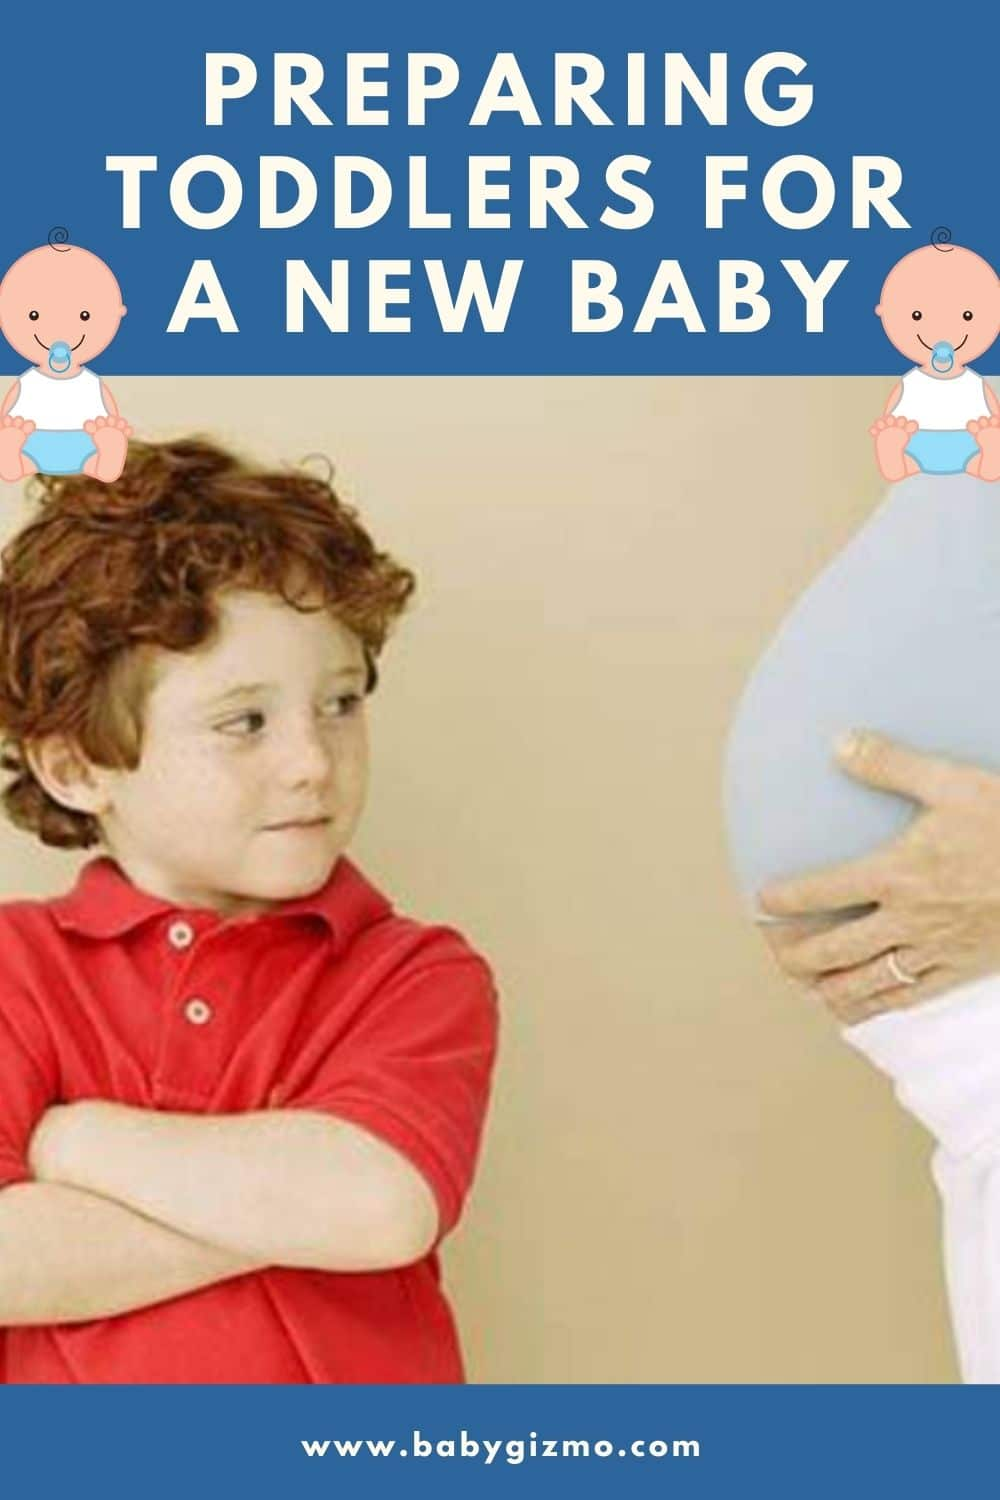 toddler looking at mom's pregnant belly